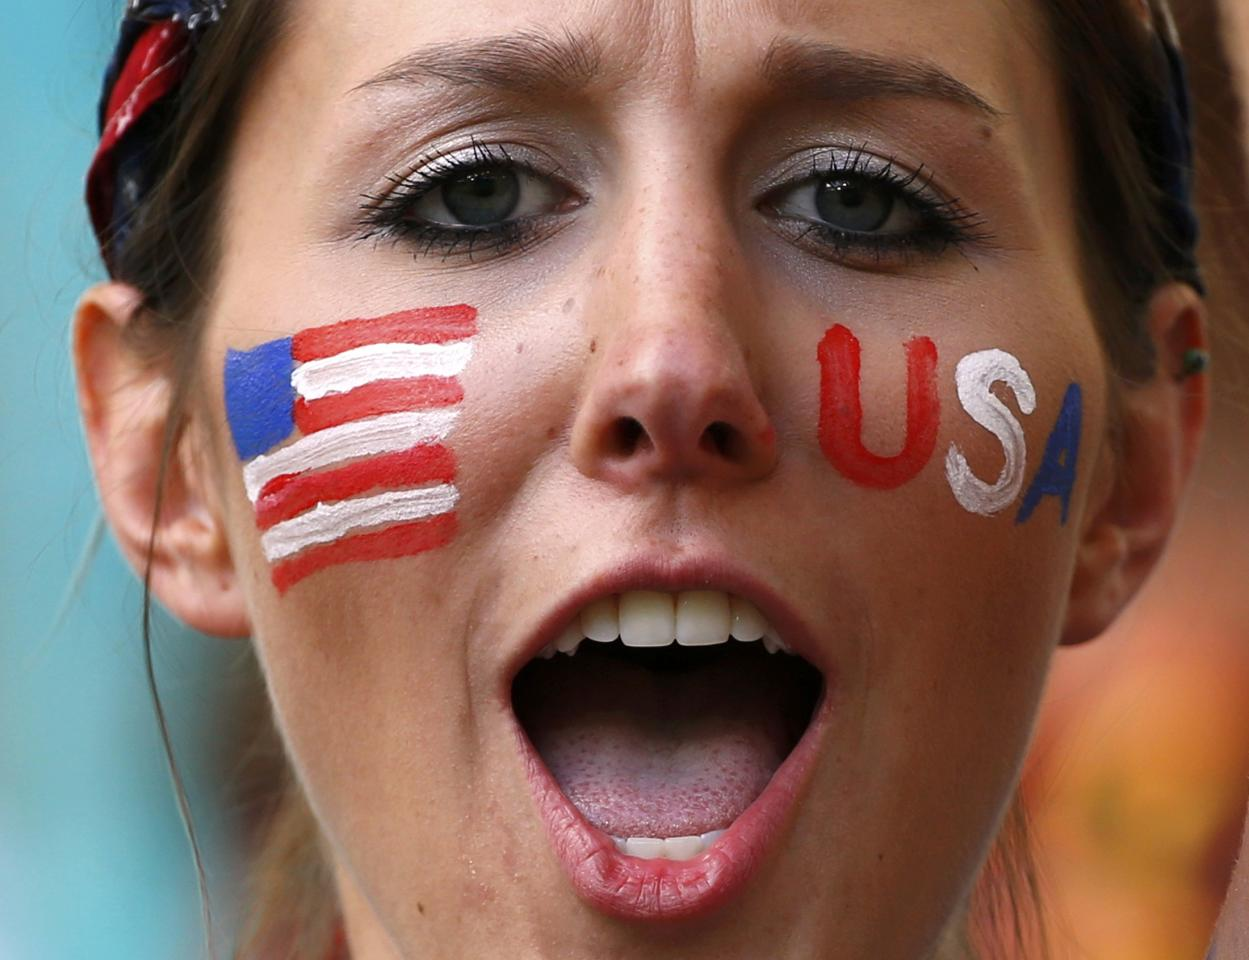 A U.S. fan cheers before the 2014 World Cup round of 16 game between Belgium and the U.S. at the Fonte Nova arena in Salvador July 1, 2014. REUTERS/Michael Dalder (BRAZIL - Tags: SOCCER SPORT WORLD CUP)